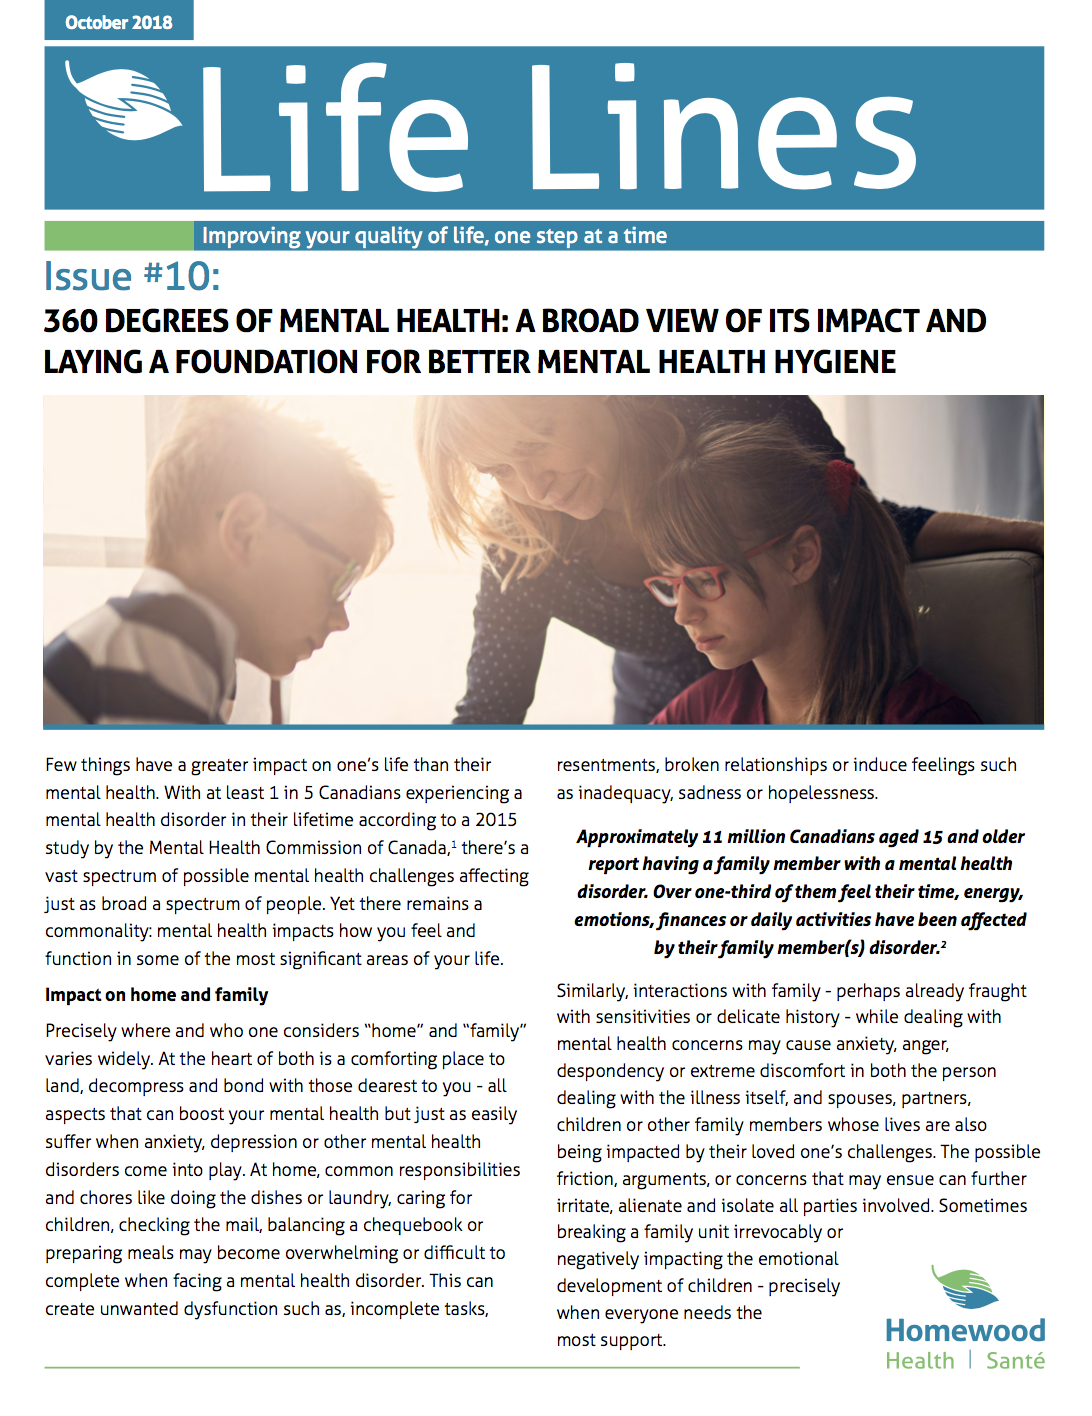 Life Lines: October 2018 pg. 1